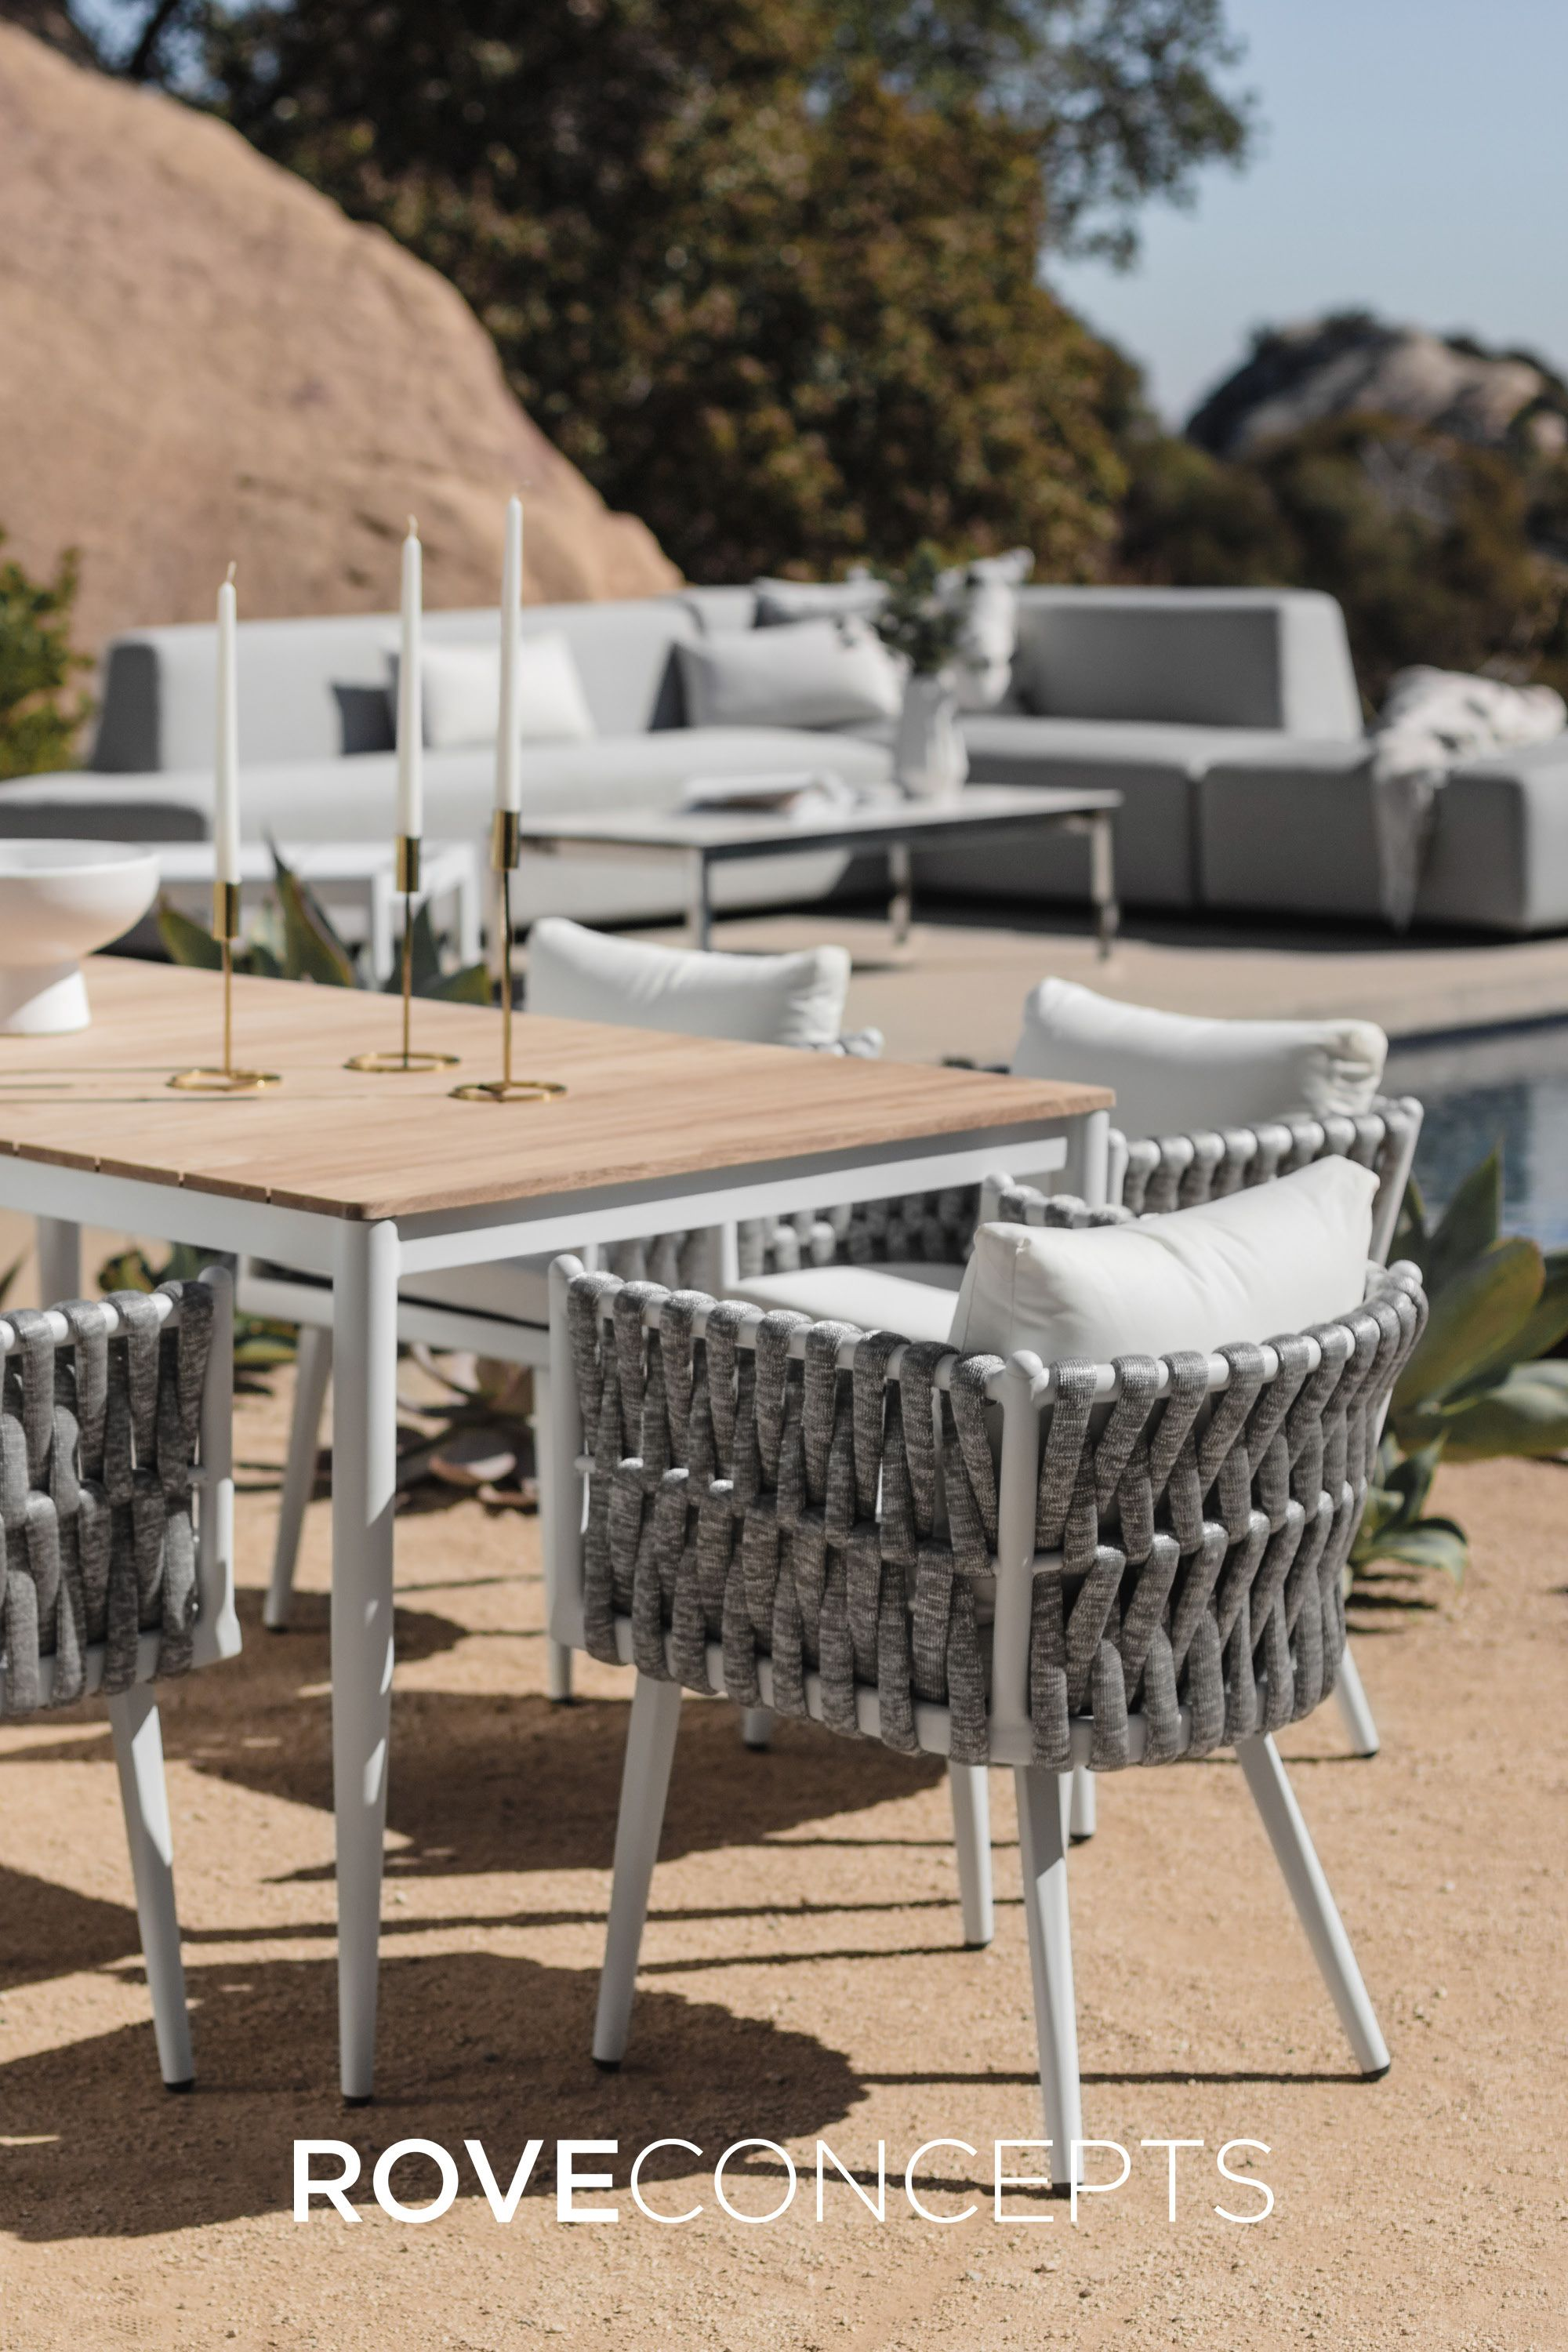 Pierre Outdoor Dining Chair In 2021 Outdoor Dining Chairs Indoor Chairs Dining Chairs